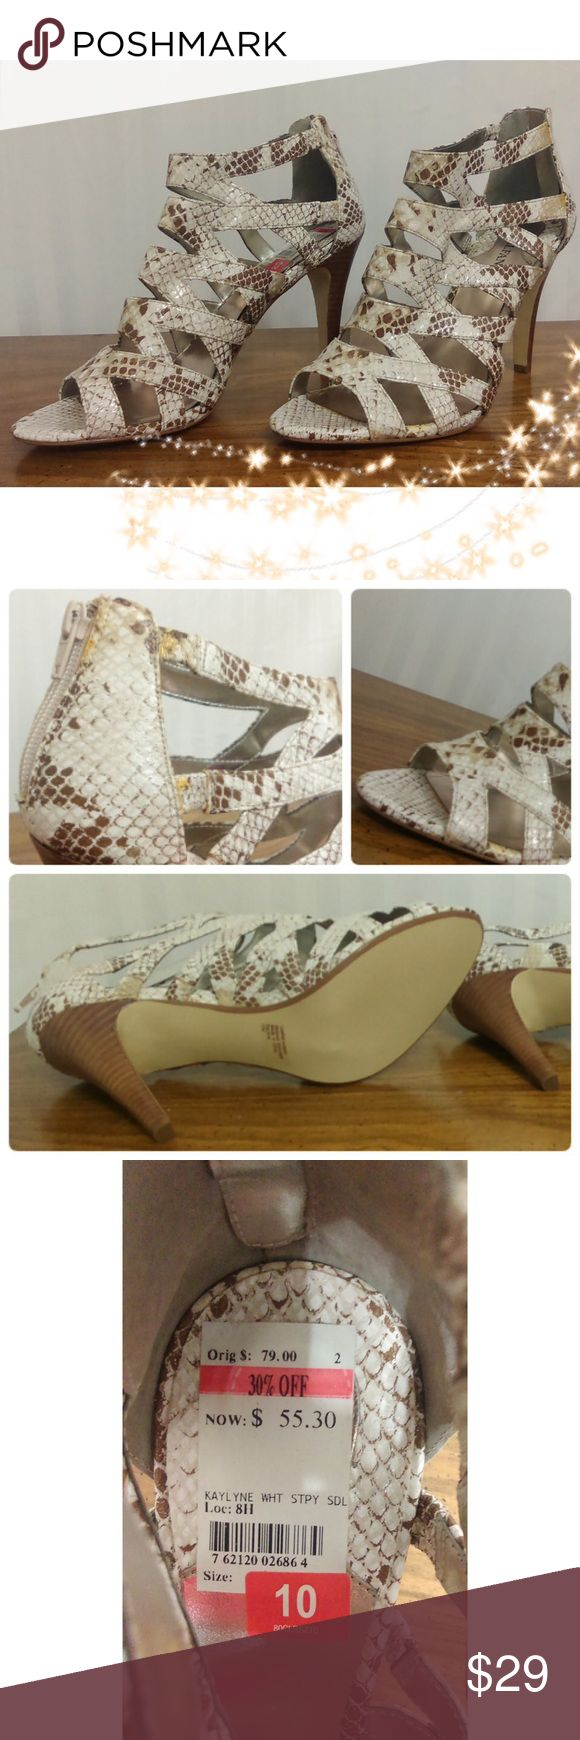 BOGO 40% OFF‼️ Alfani Animal Print High Heels Read my listing with BOGO PROMOTION for more details. Ends Soon.                        Gorgeous Alfani Animal Print White & Brown High Heels. Measurements: 4.5 inches Heel Width: Medium Material: Leather Original price $79.00 USD!!  I bought them but never worn them. Beautiful Heels! (Do not include original box). I offer 15% Discount 2+ Items bundle!  Alfani Shoes Heels